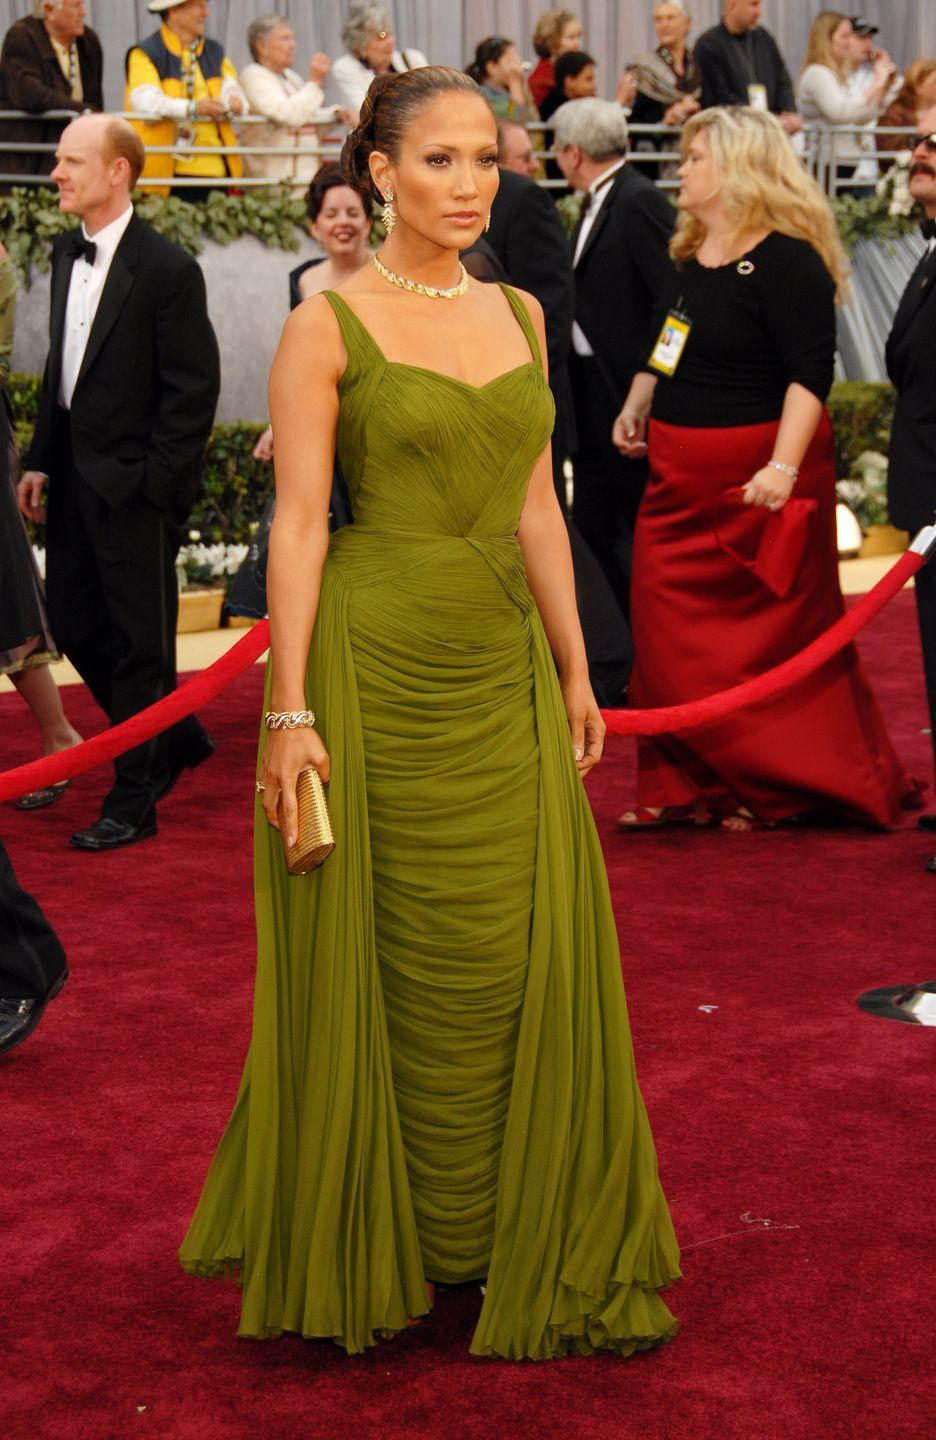 <p><strong>When: </strong>March 2006</p><p><strong>Where: </strong>The Academy Awards</p><p><strong>Wearing: </strong>Jean Desses</p>